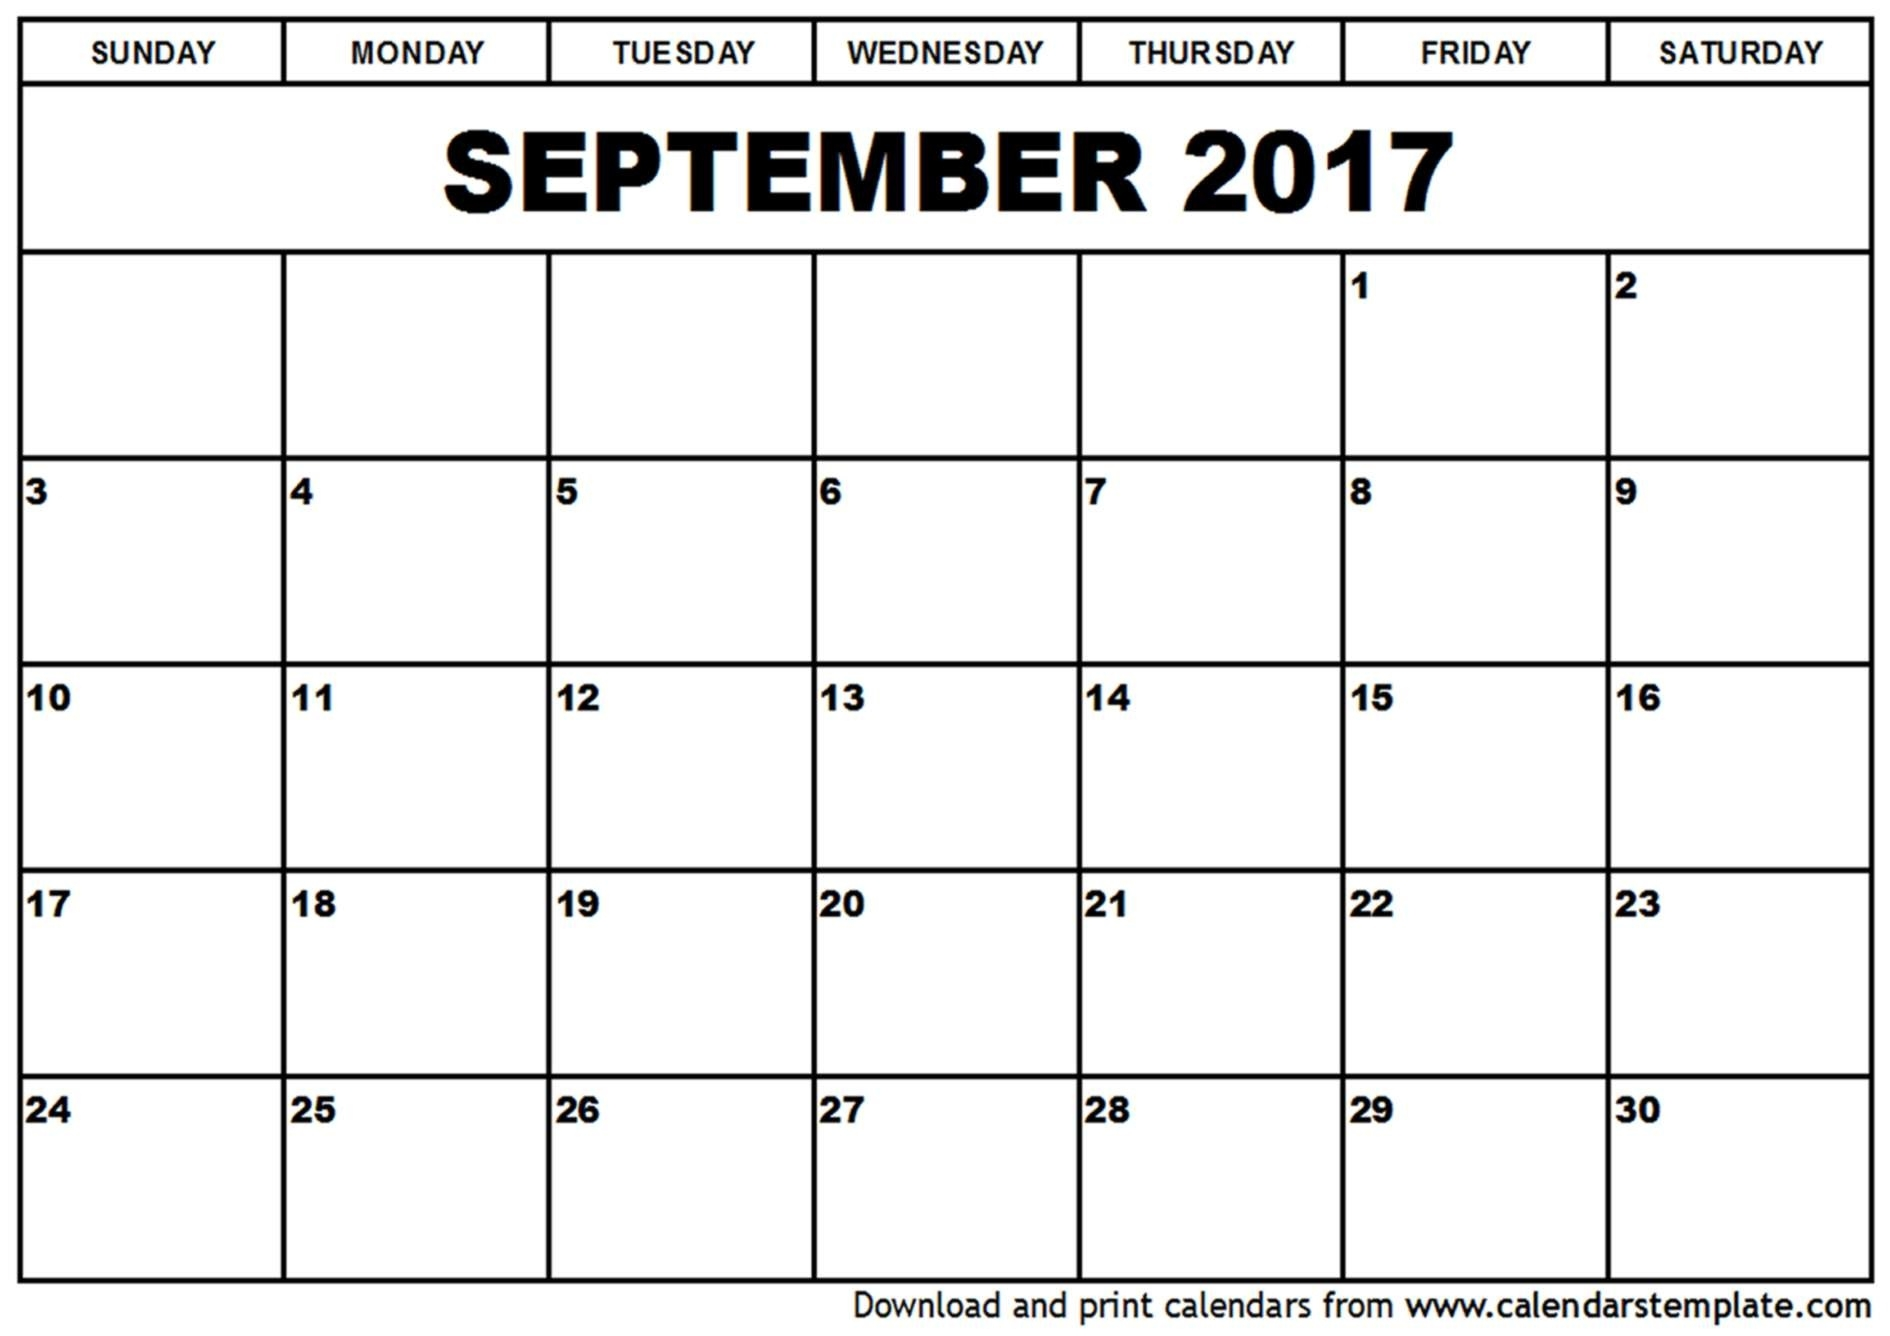 September Calendar 2017 - Printable Calendar 2018  Calendar For The Month Of September